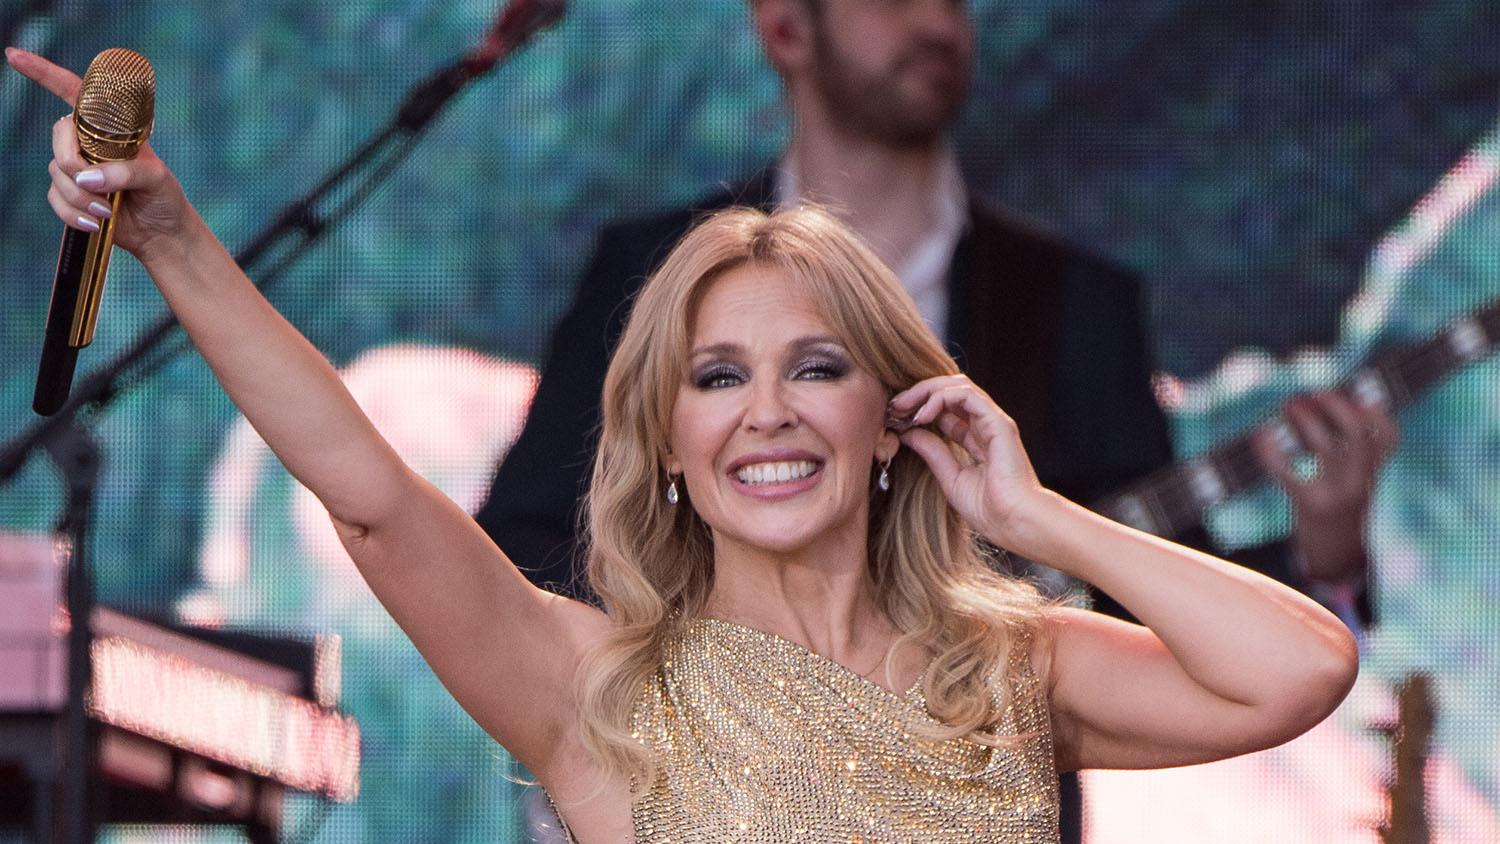 A tearful Kylie Minogue steals the show at Glastonbury